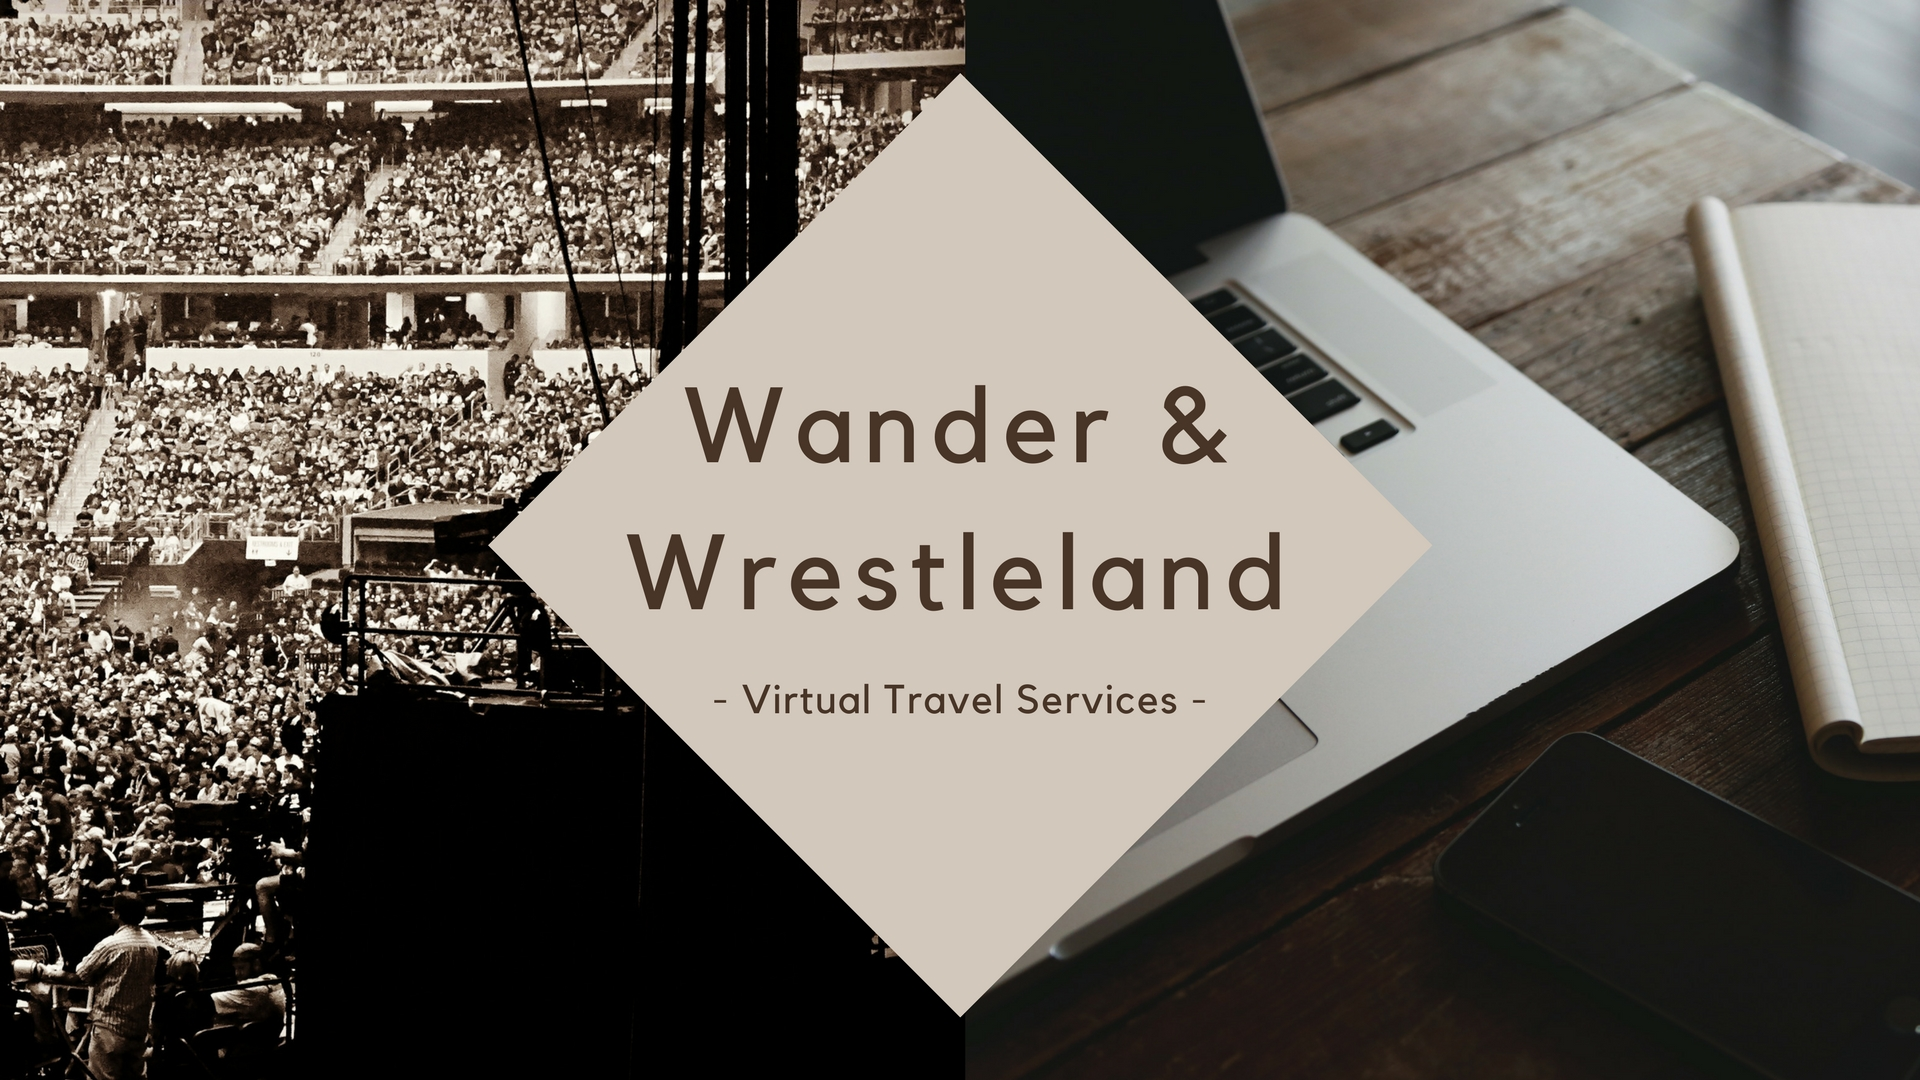 Wander and Wrestleland - Virtual Travel Services